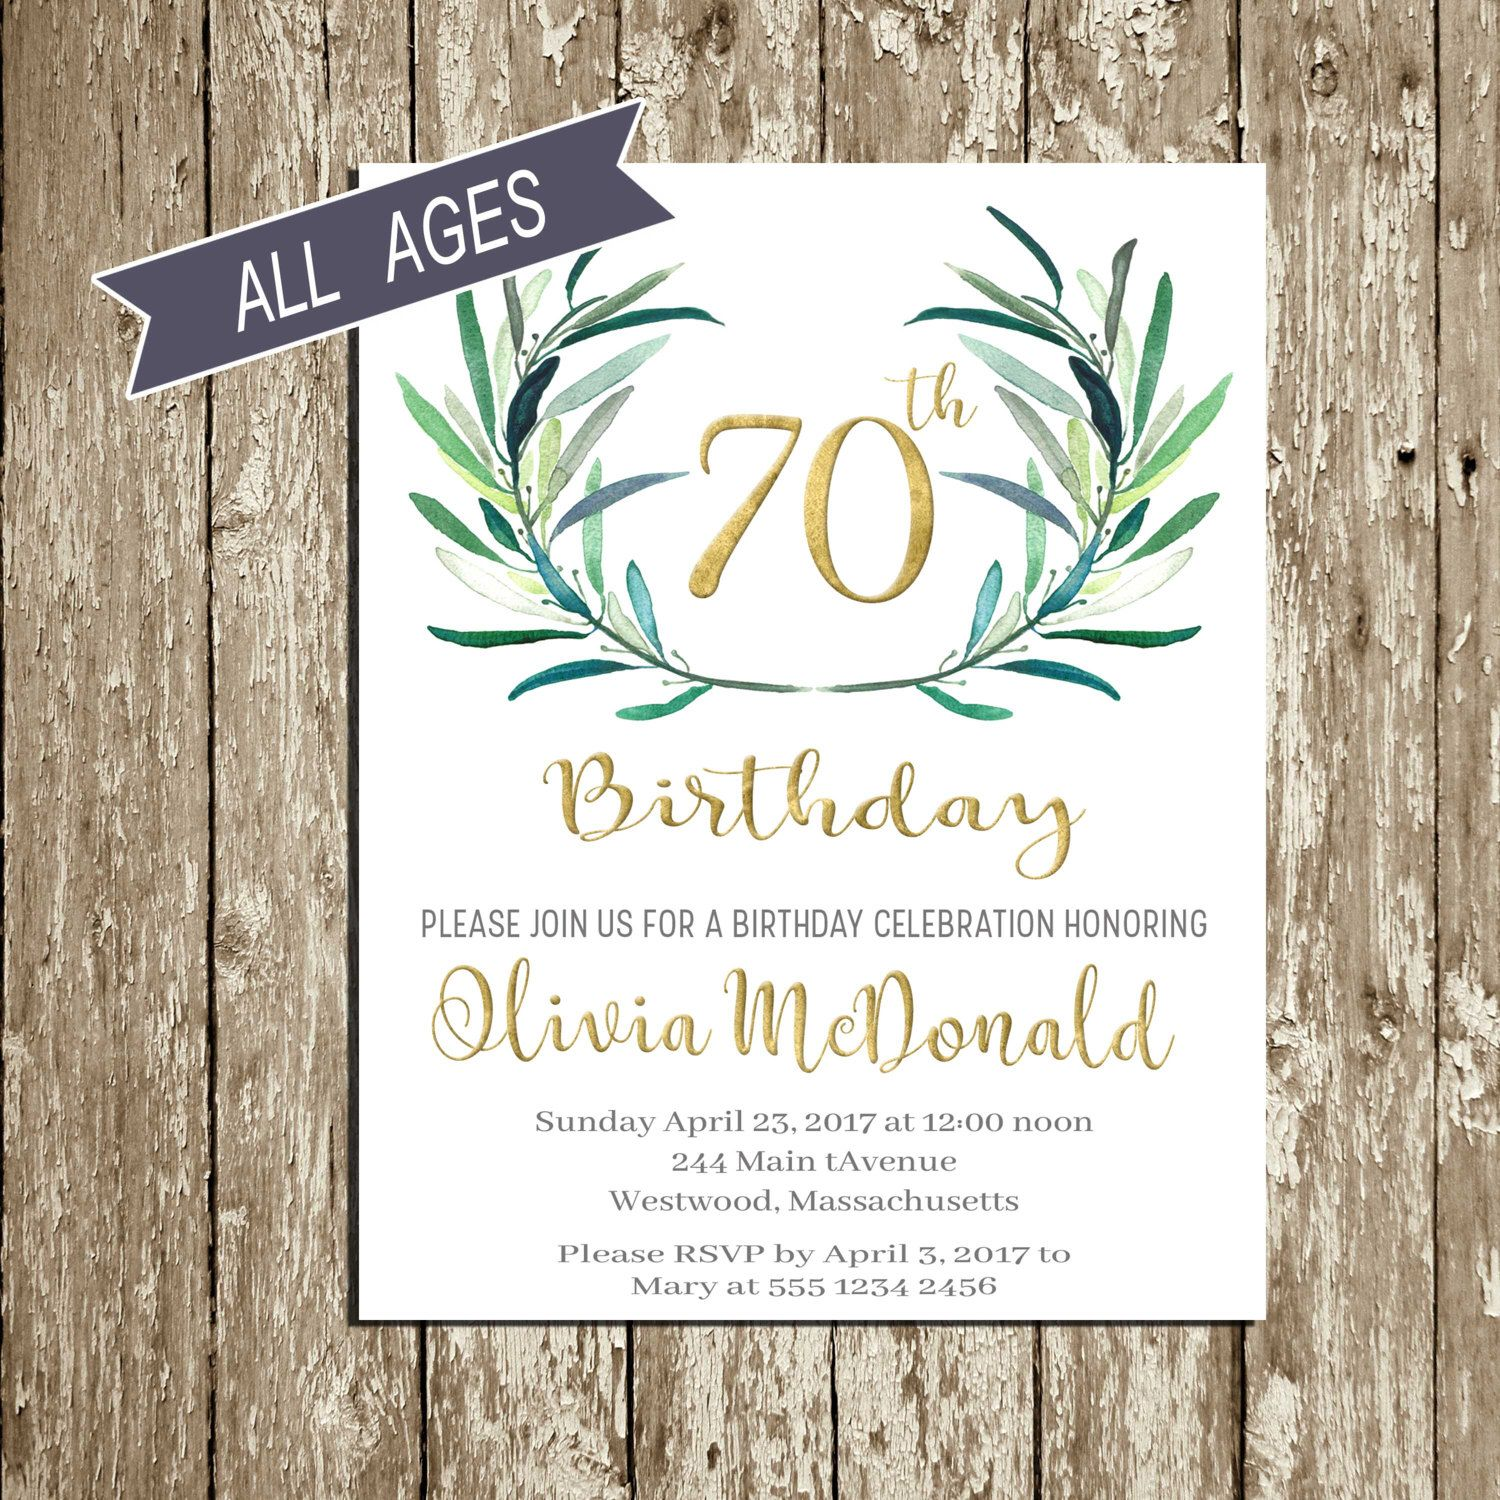 th Birthday Invitation Birthday invitations for woman Green and